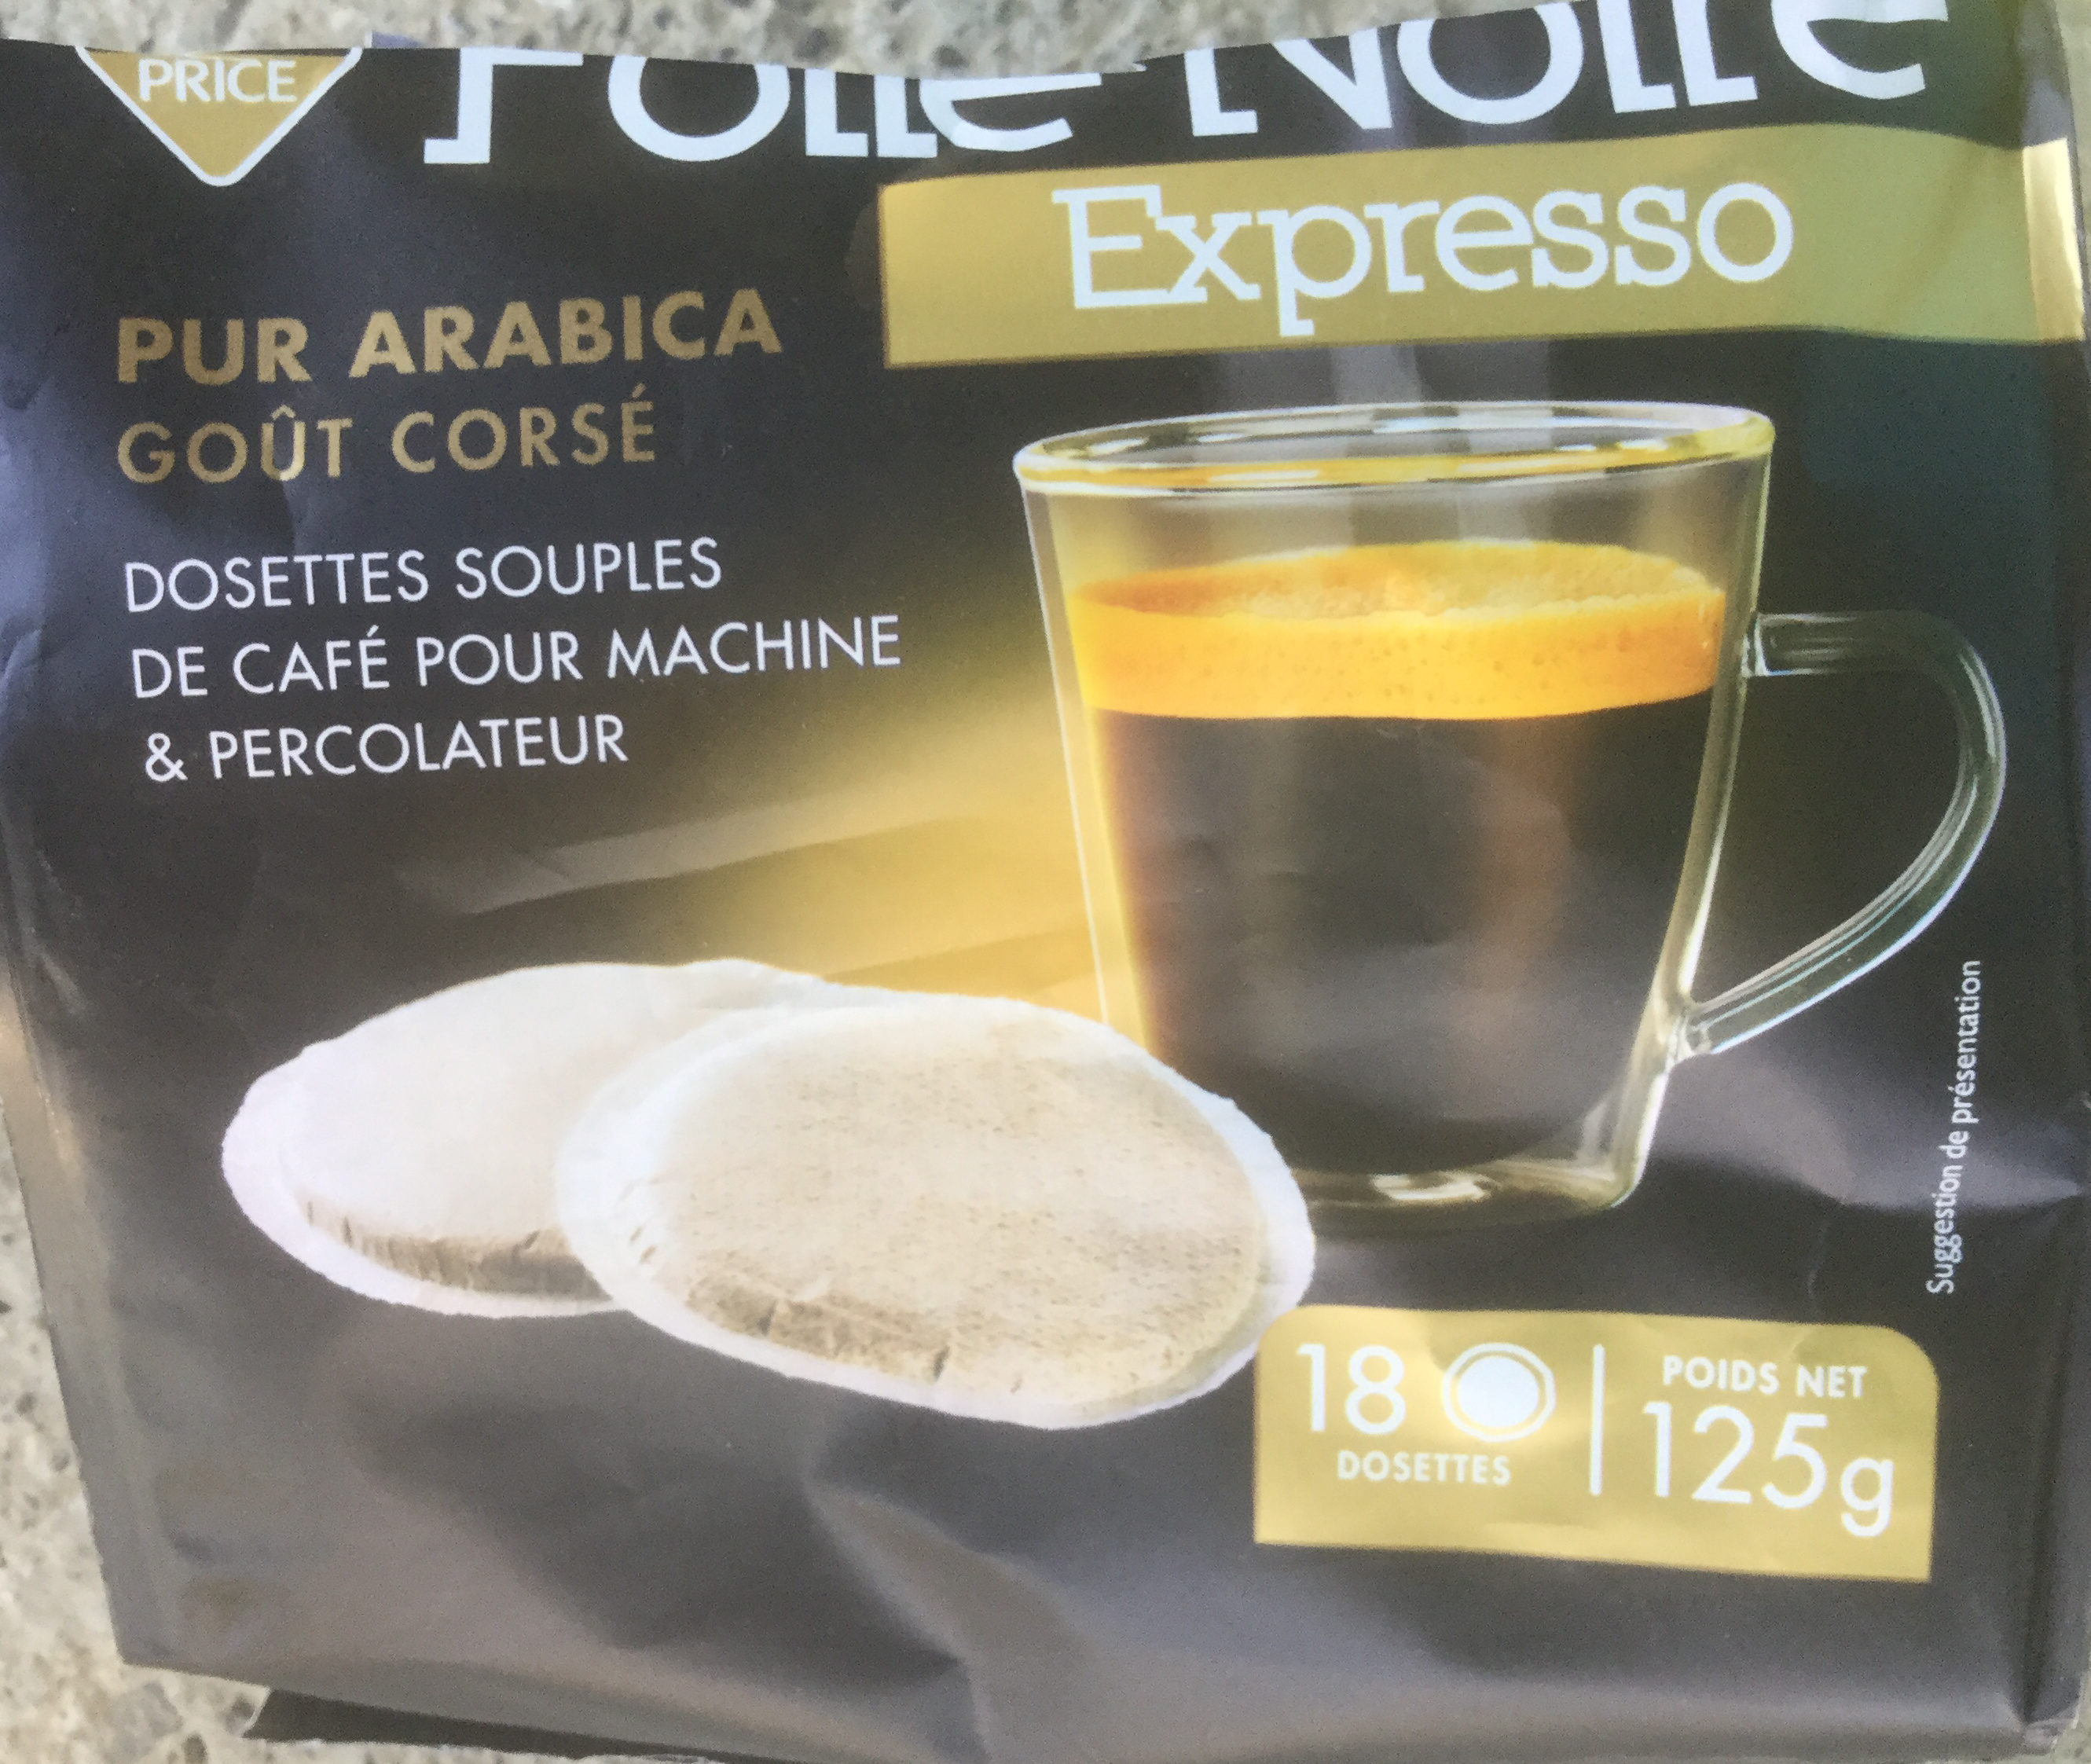 Dosette Expresso x18, - Product - fr